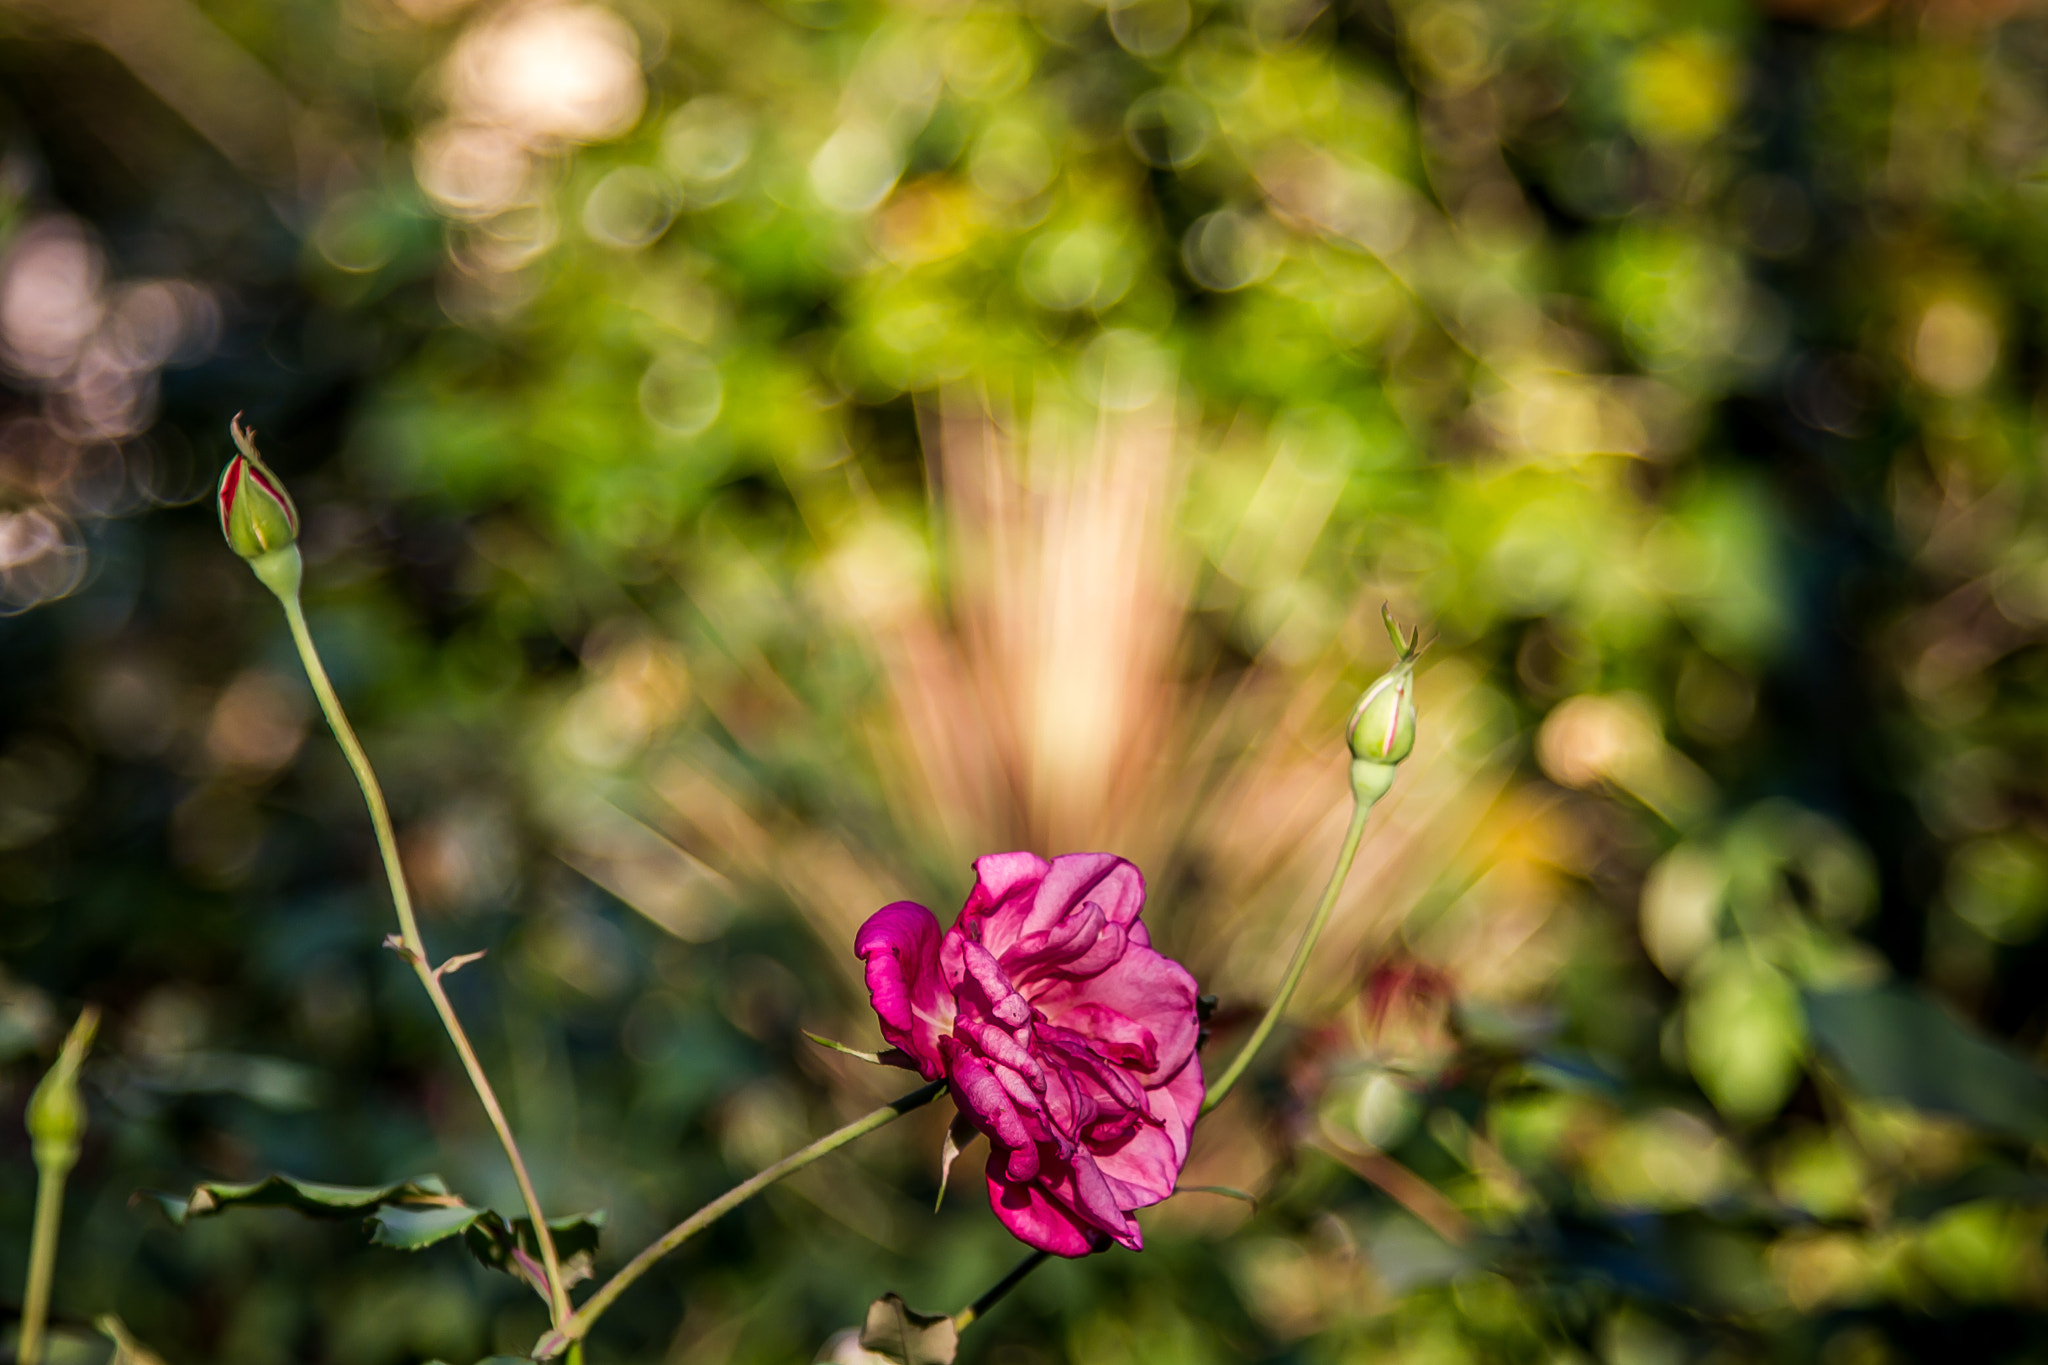 Photograph A solitary rose by Vanius Roberto Bittencourt on 500px